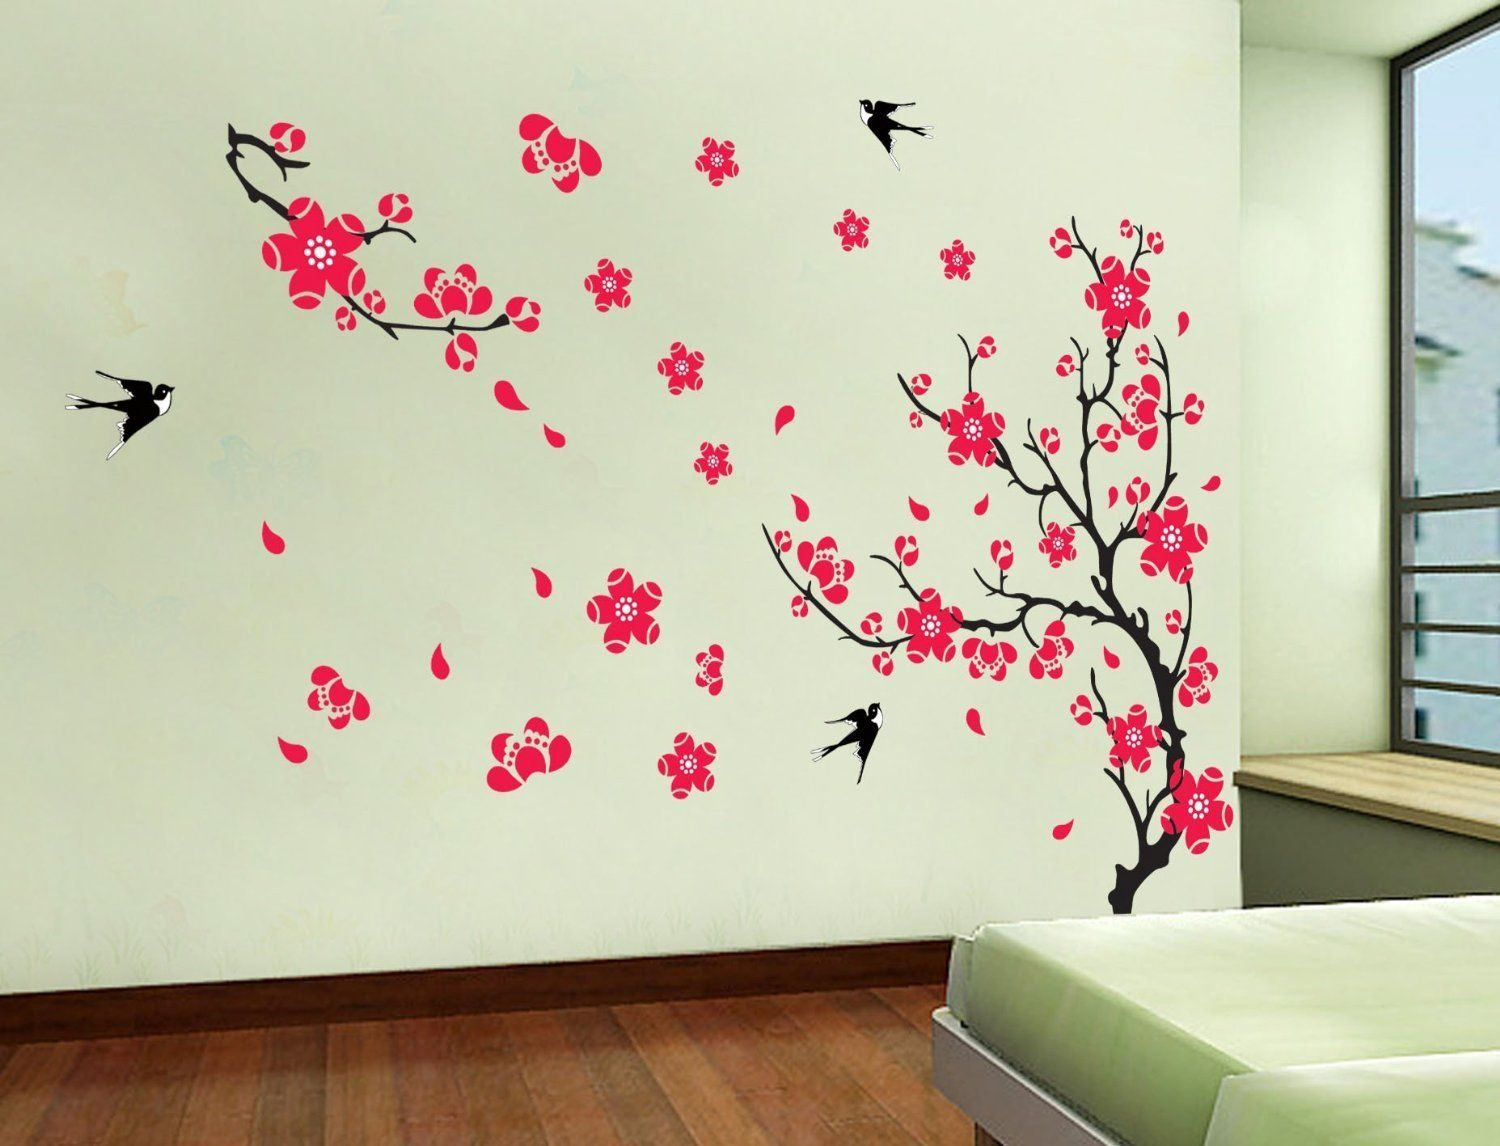 Wall decoration stickers for bedroom - Wall Stickers Decor Yyone Plum Blossom Red Flowers Tree Branch Swallows Art Wall Mural Home